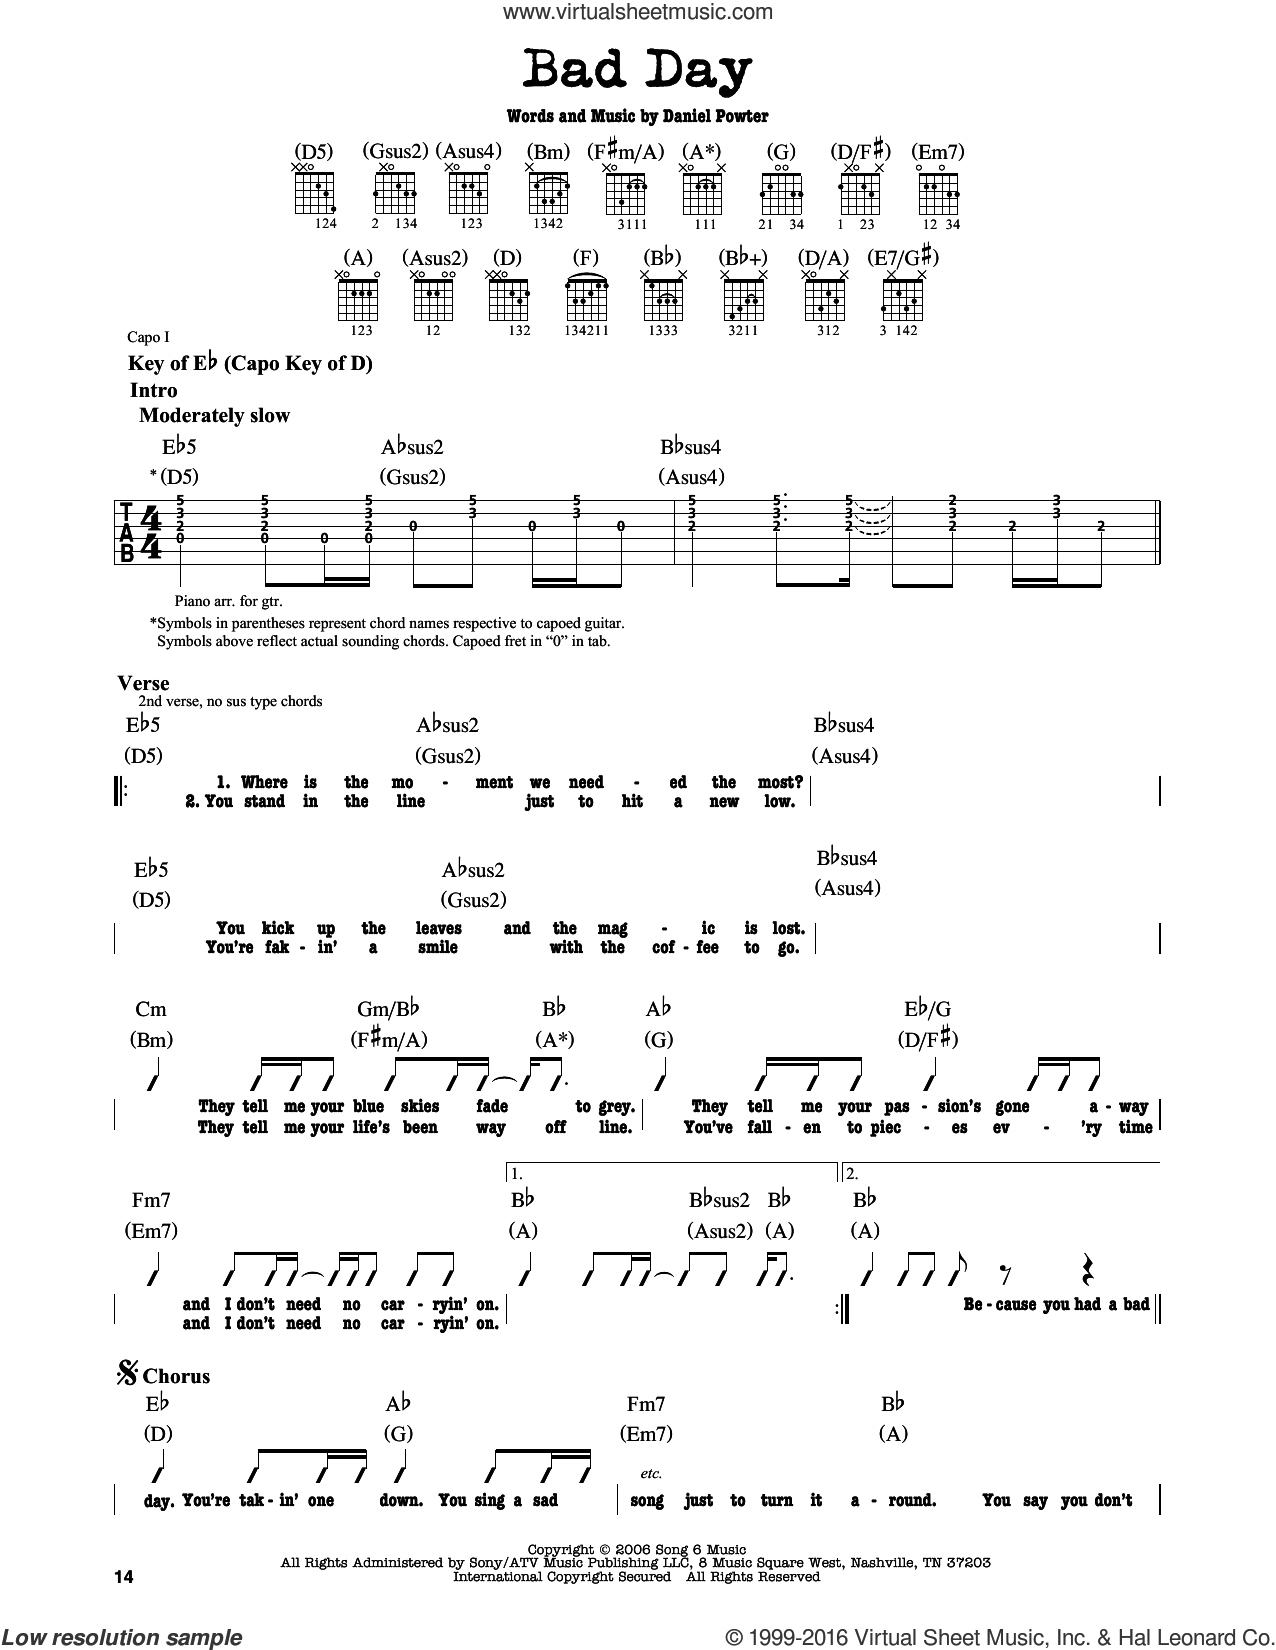 Bad Day sheet music for guitar solo (lead sheet) by Daniel Powter. Score Image Preview.